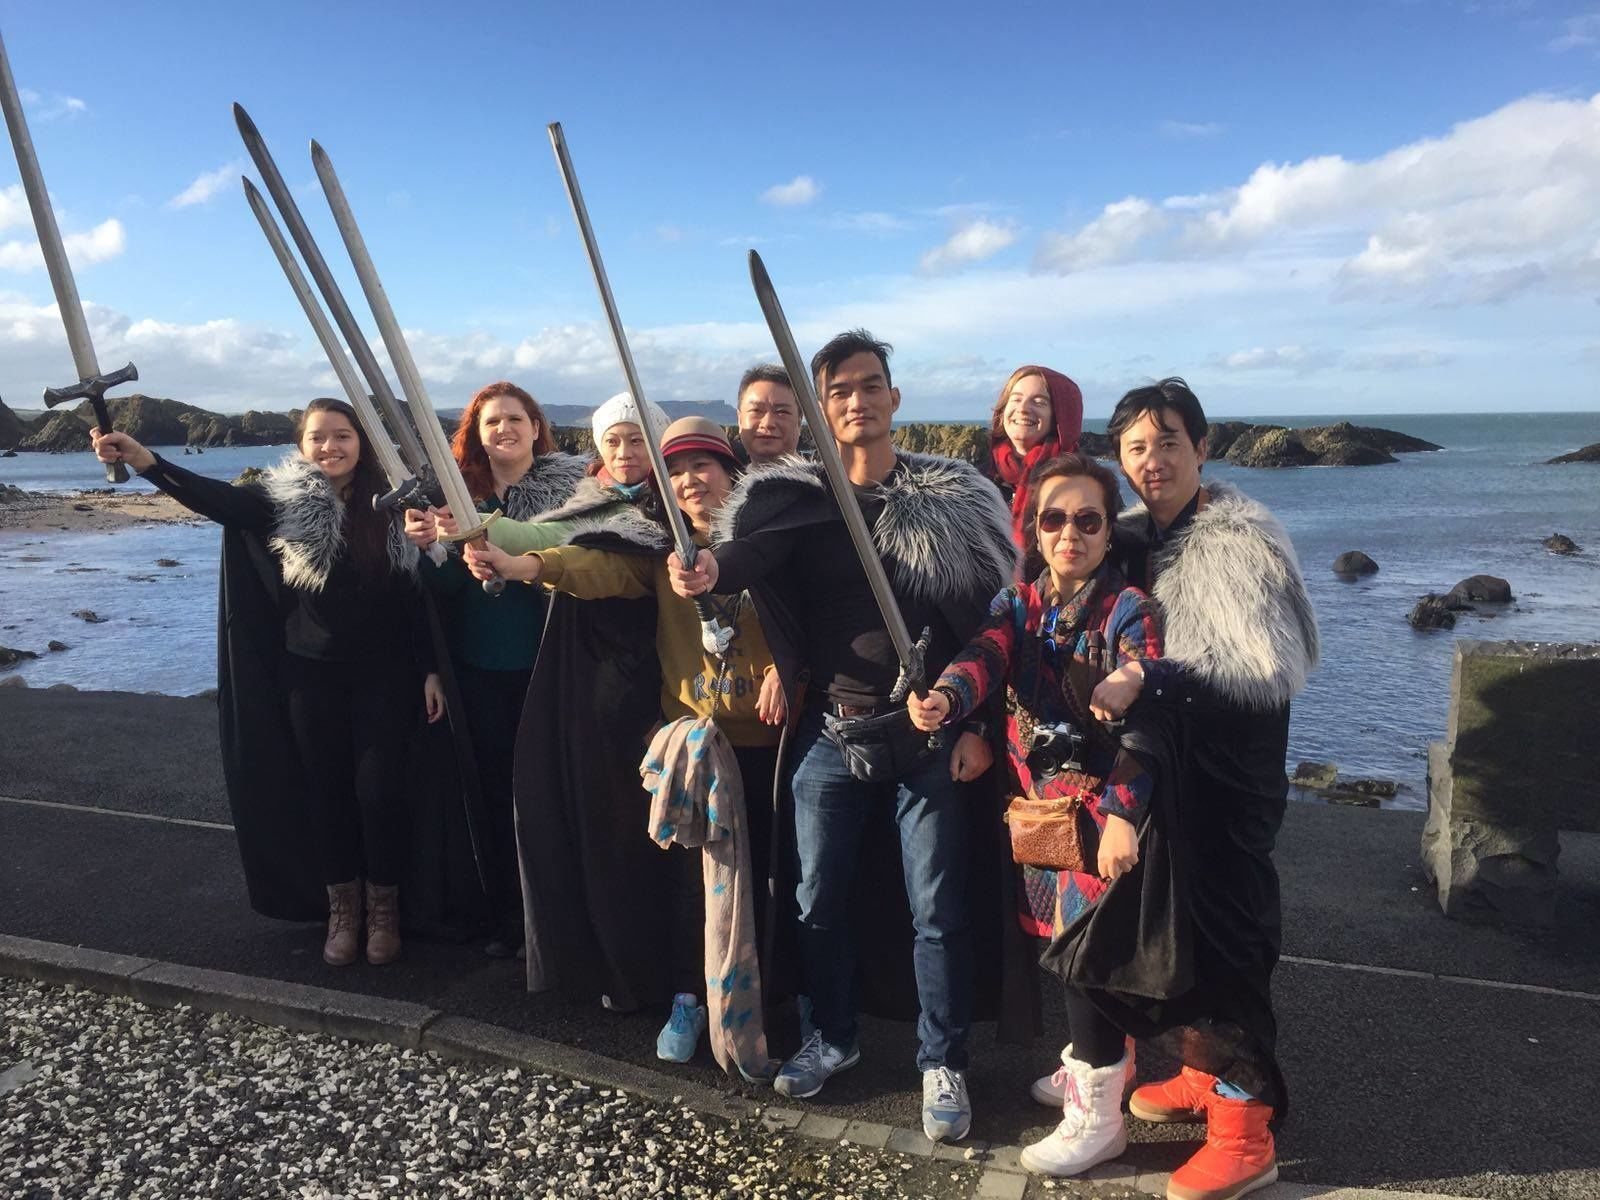 Game of Thrones Full Filming Locations With Giants Causeway